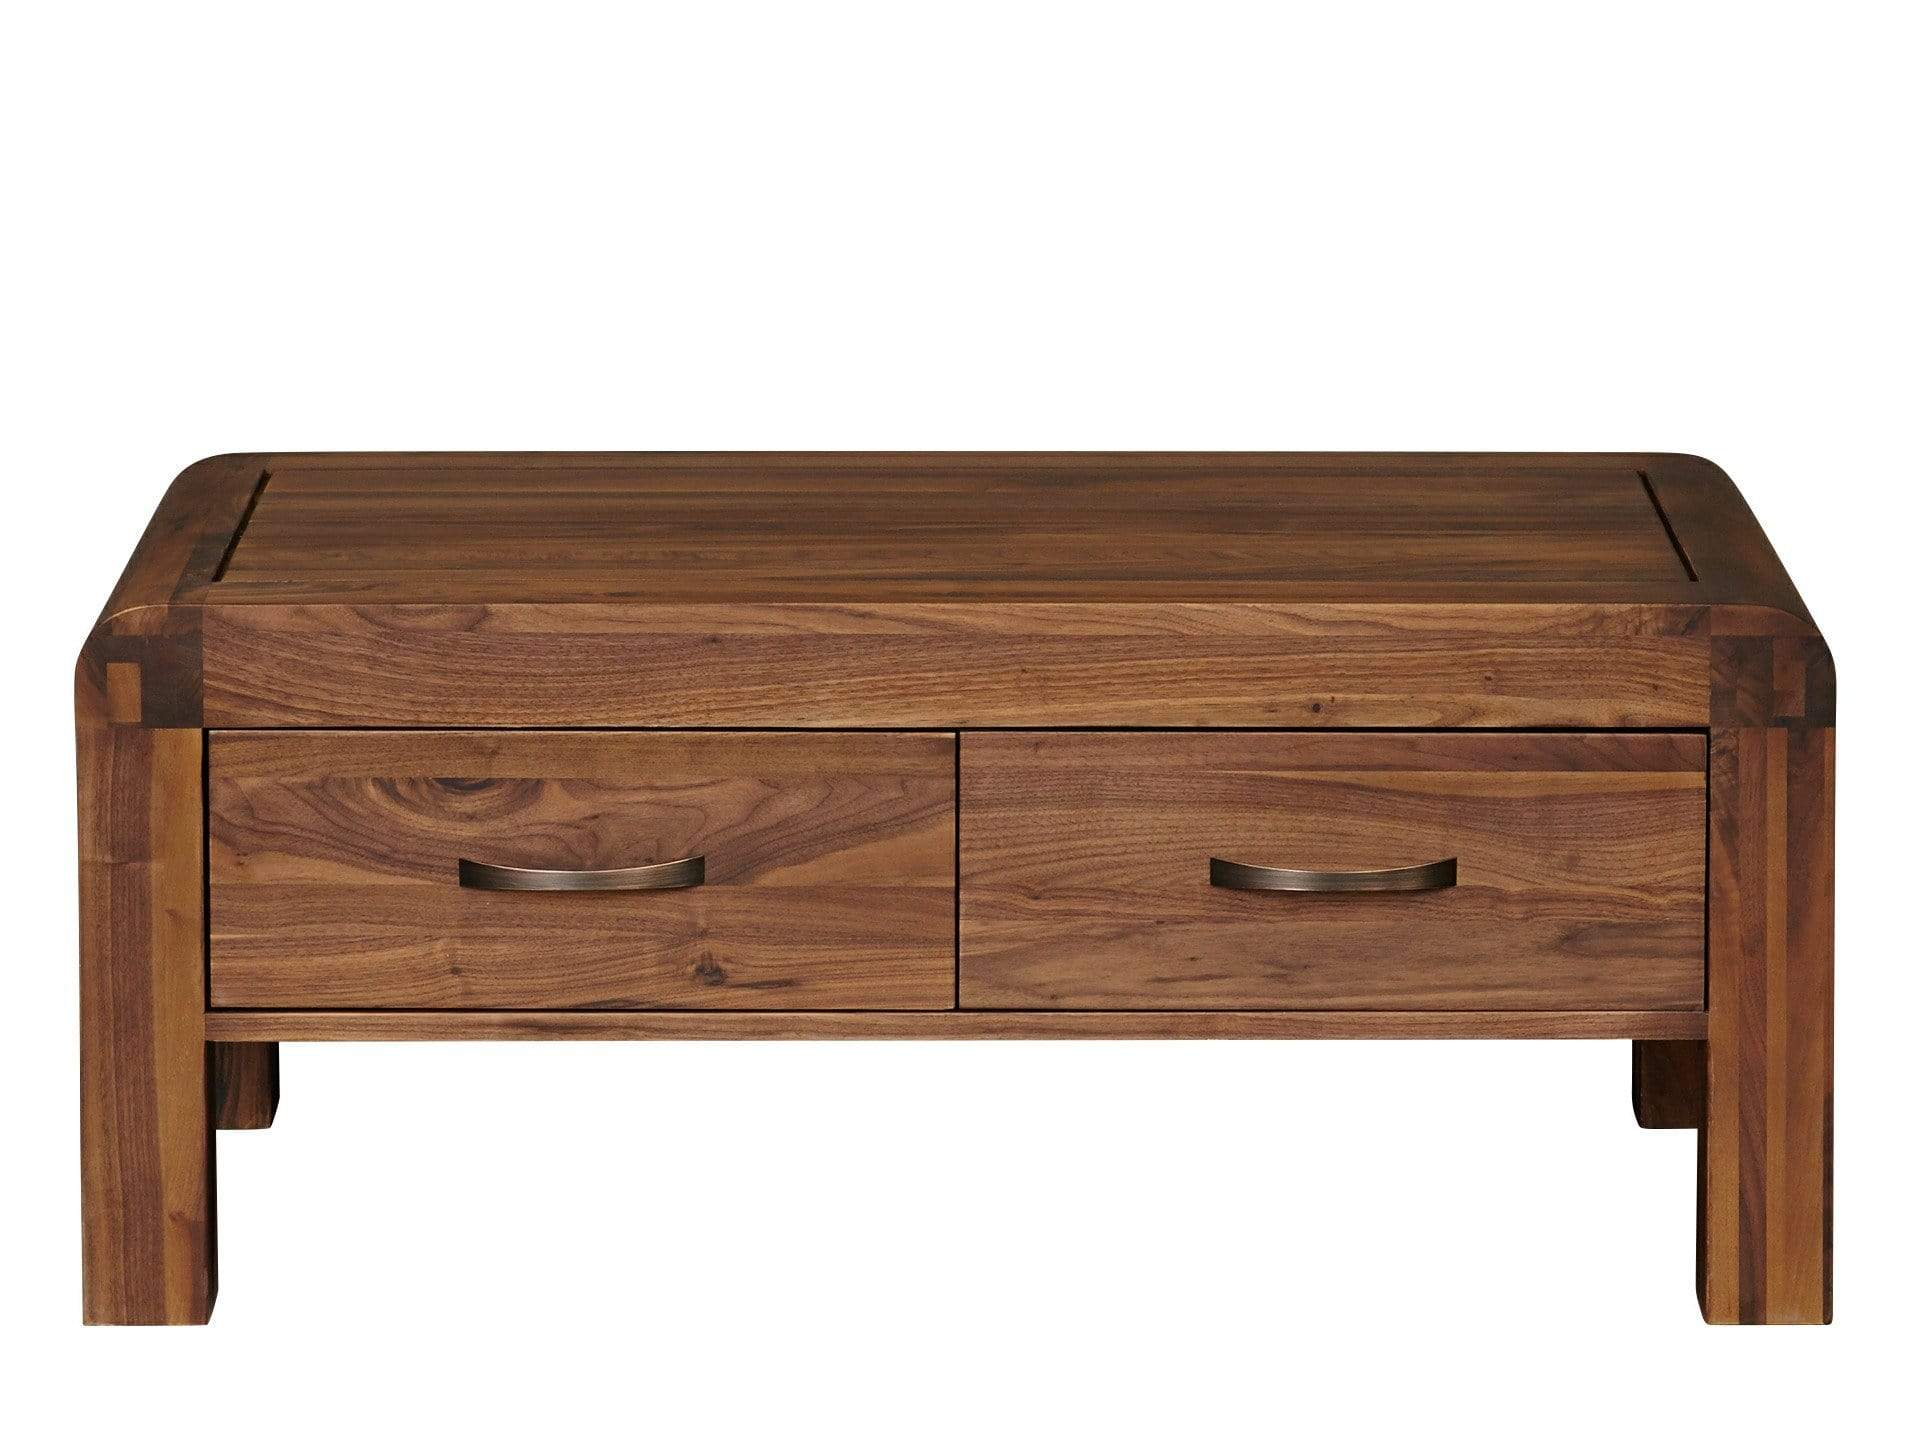 Dark wood coffee table featuring two drawers and curved edges